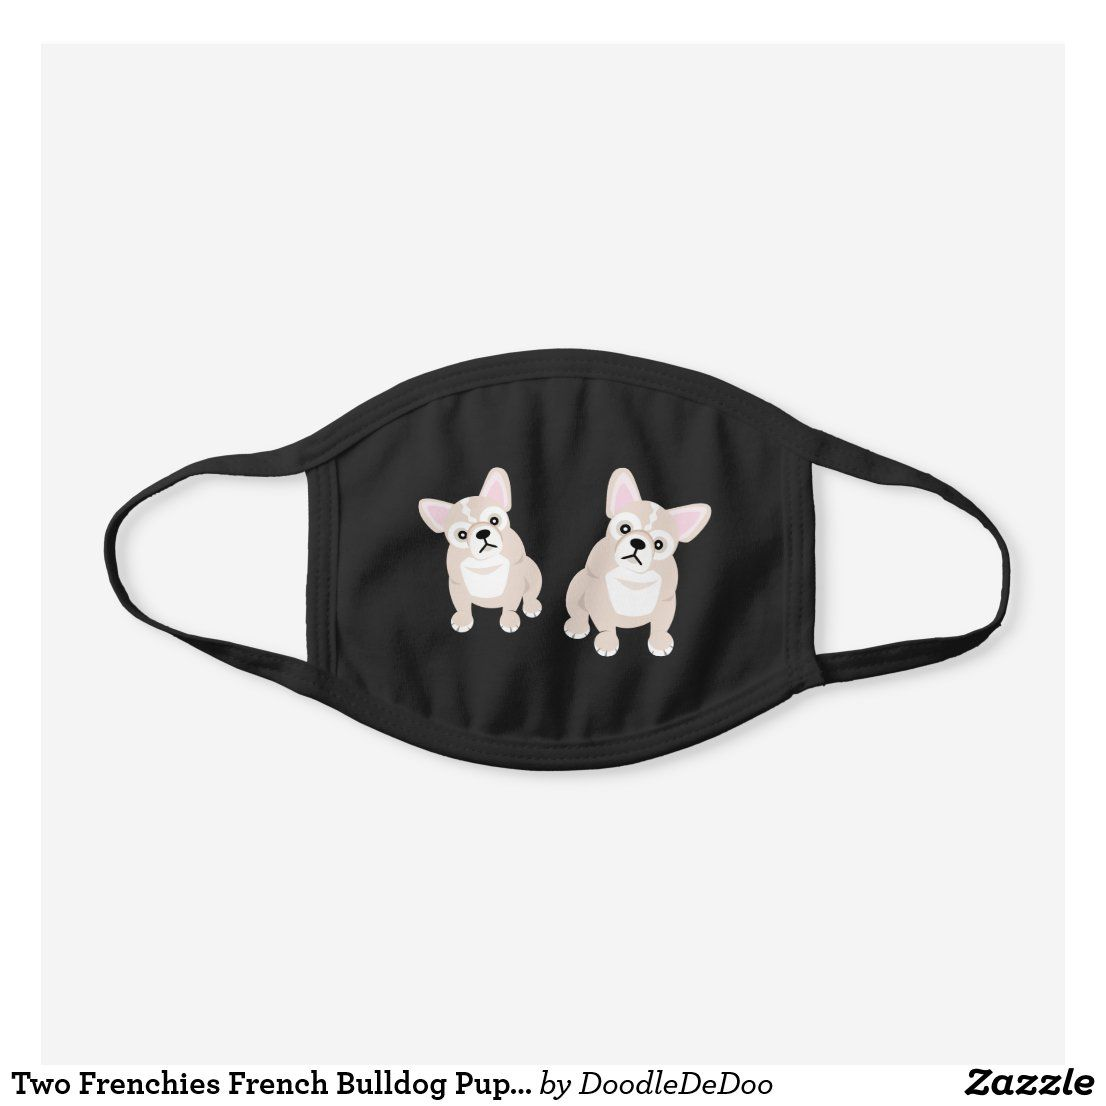 Two Frenchies French Bulldog Puppies Black Cotton Face Mask Zazzle Com In 2020 French Bulldog Puppy Black French Bulldog Funny French Bulldog Puppies